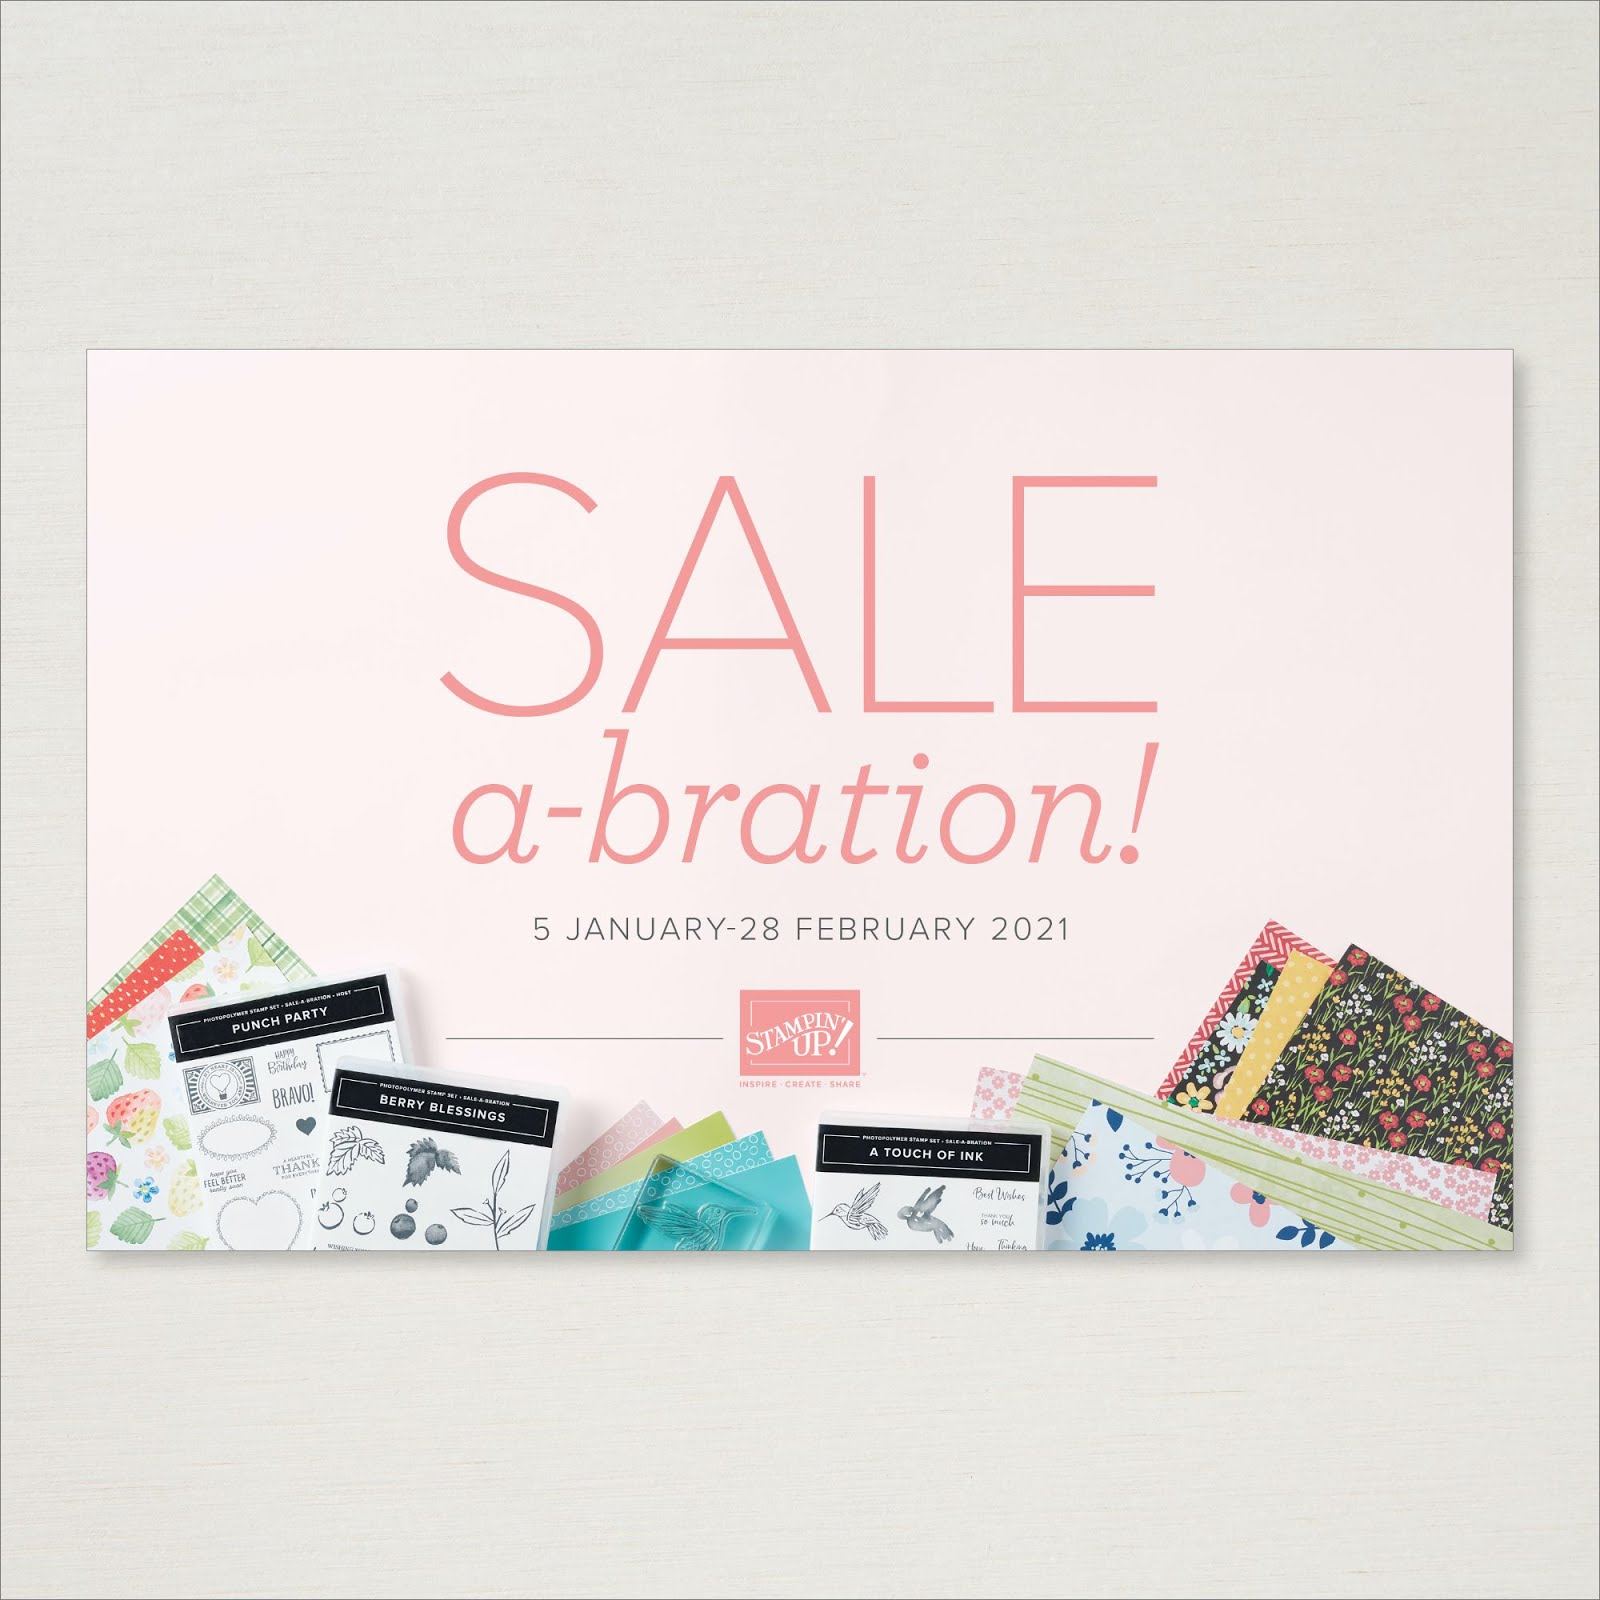 Sale a-Bration!